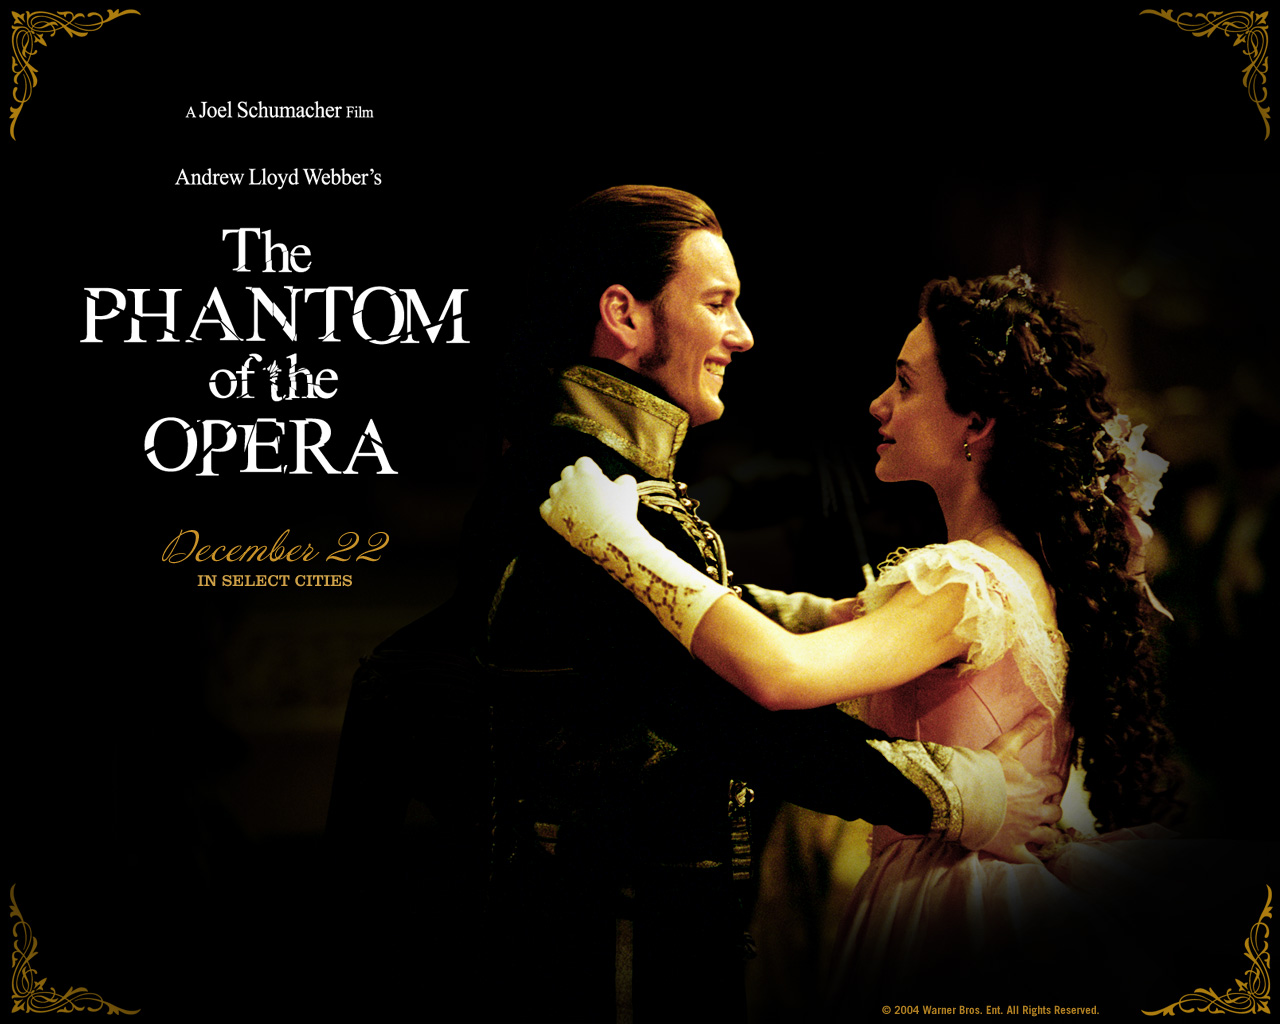 The Phantom Of The Opera Movie Wallpapers Films Gerard Butler Phantom Of The Opera 2055258 Hd Wallpaper Backgrounds Download